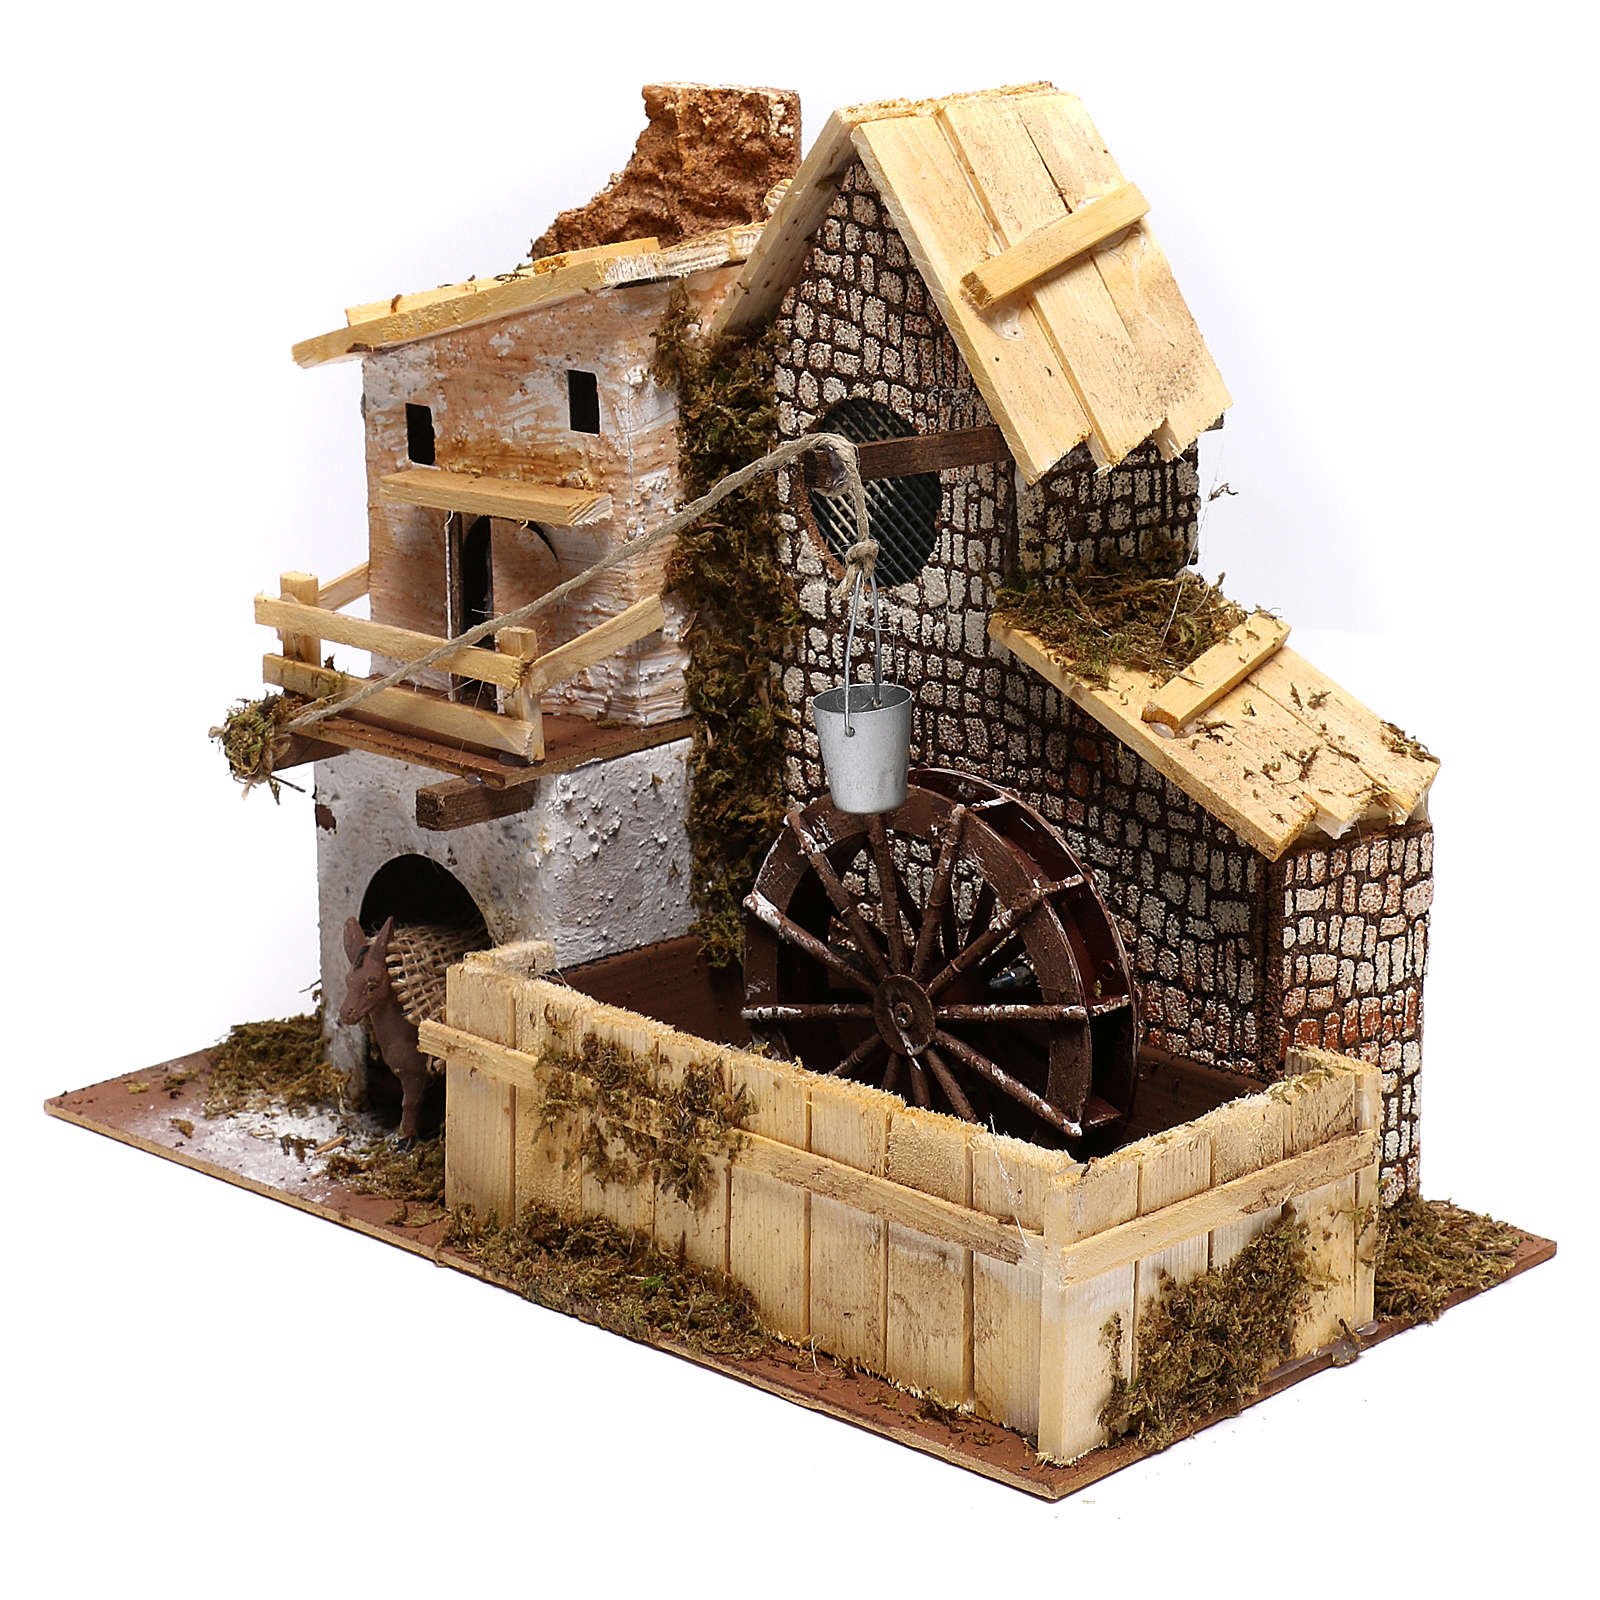 Nordic farmhouse with working mill and donkey Nativity scenes 9 cm 4